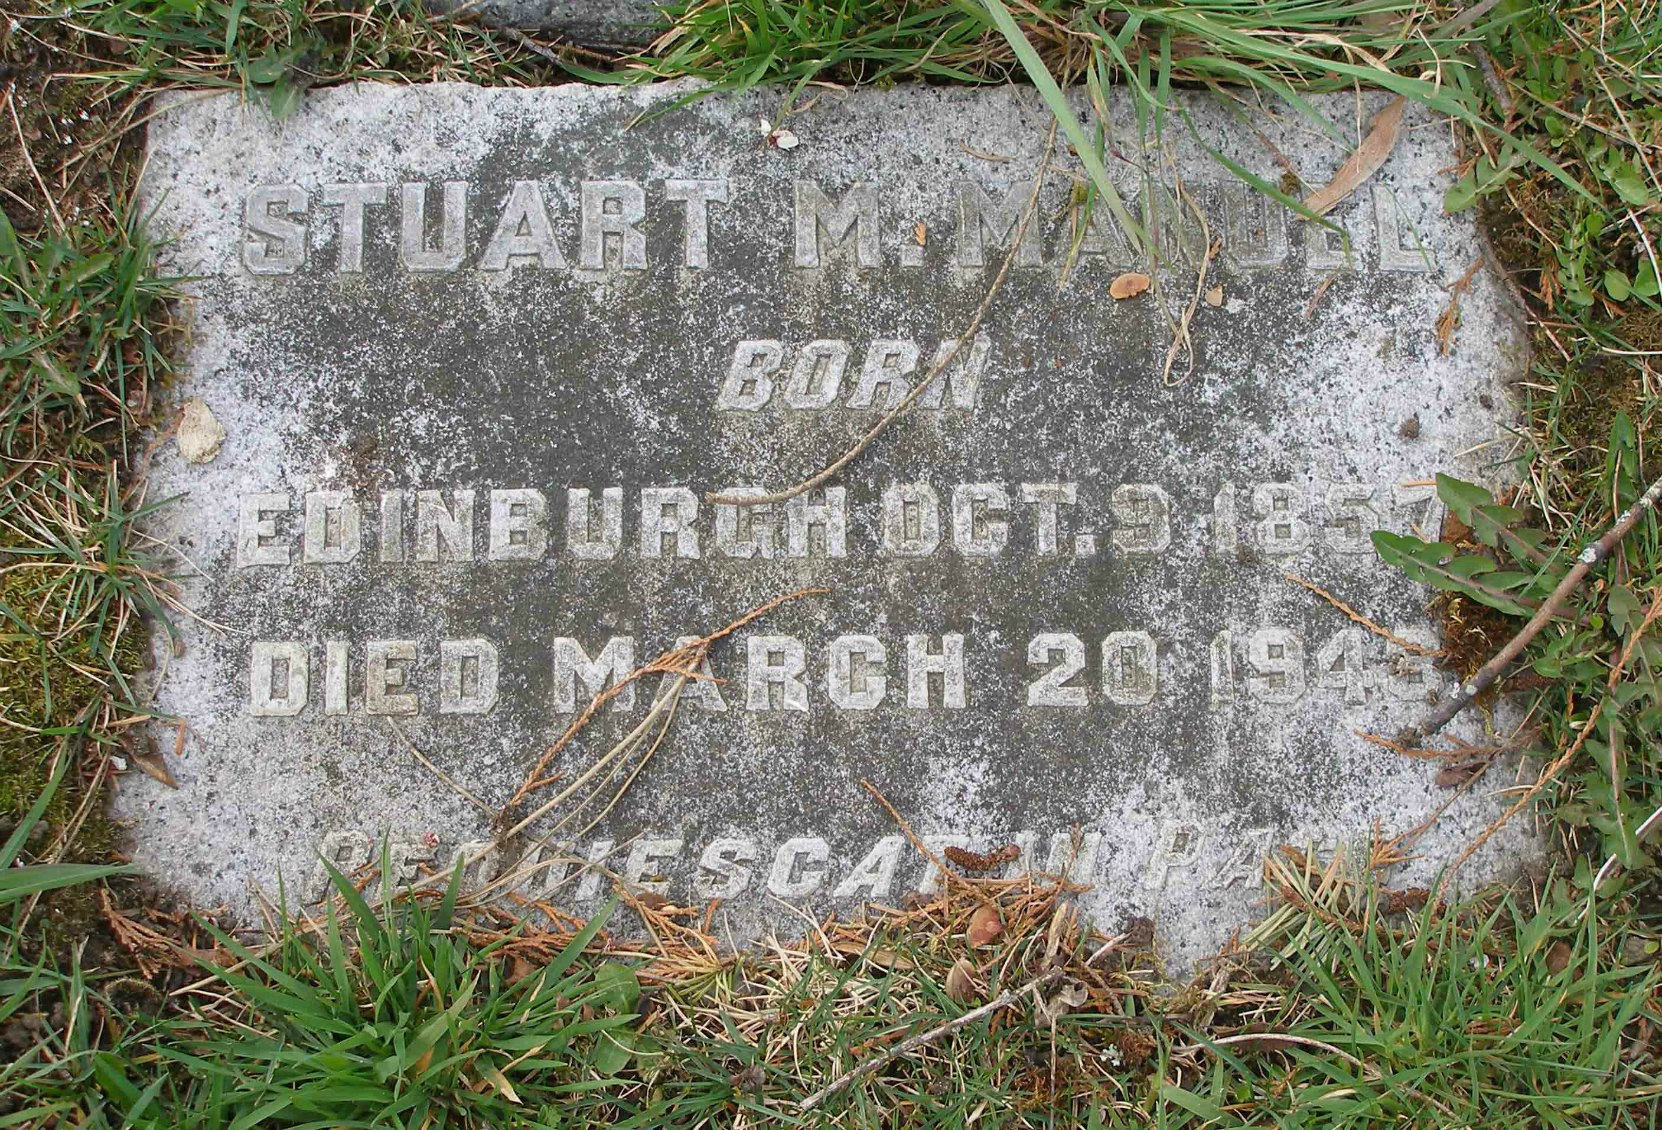 Stuart Menelas Manuel grave marker, Ross Bay Cemetery, Victoria, B.C. (photo by Temple Lodge No. 33 Historian)